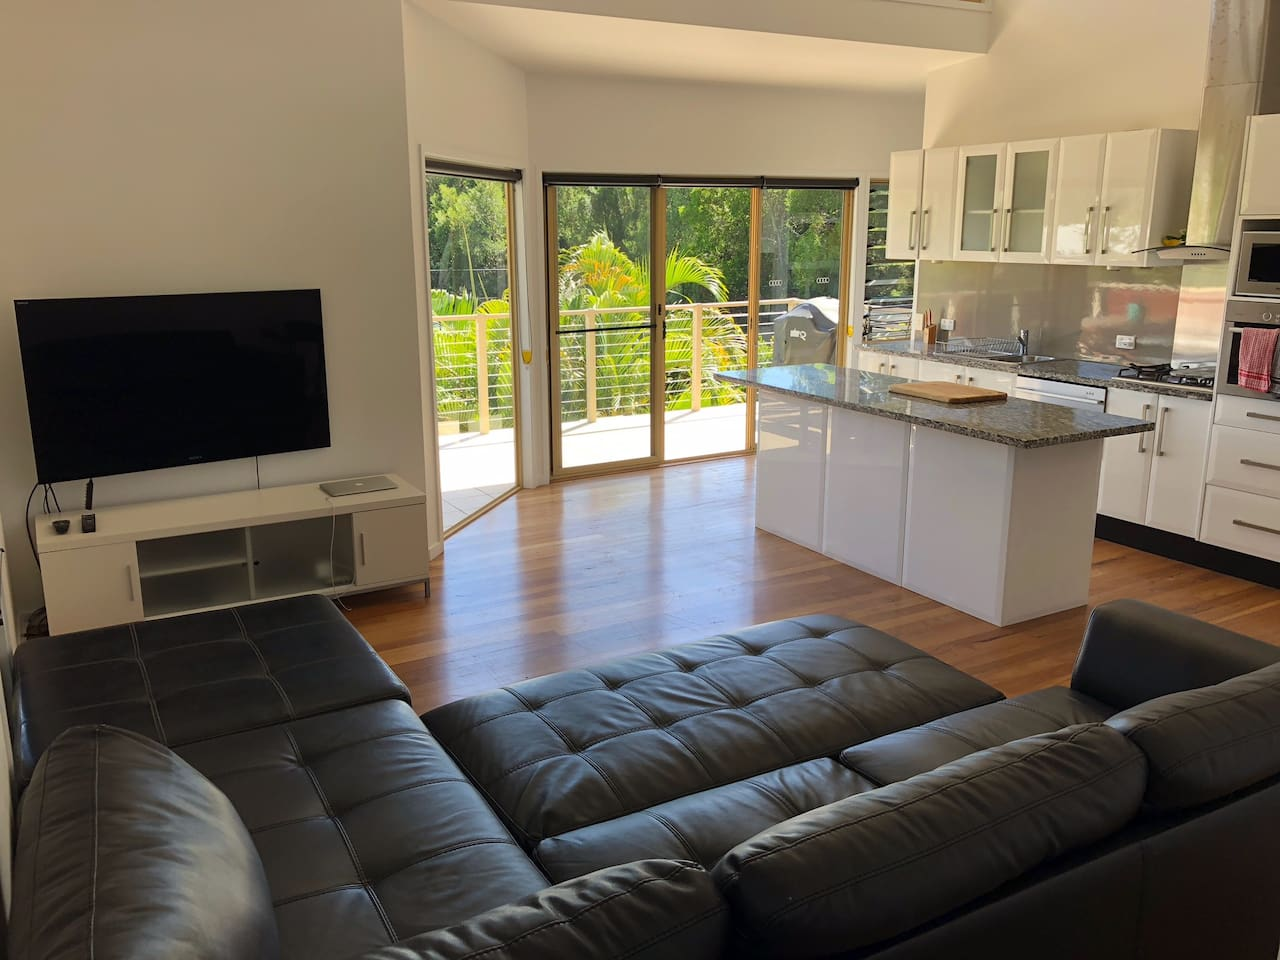 Immaculate sun-drenched interiors, open plan layout